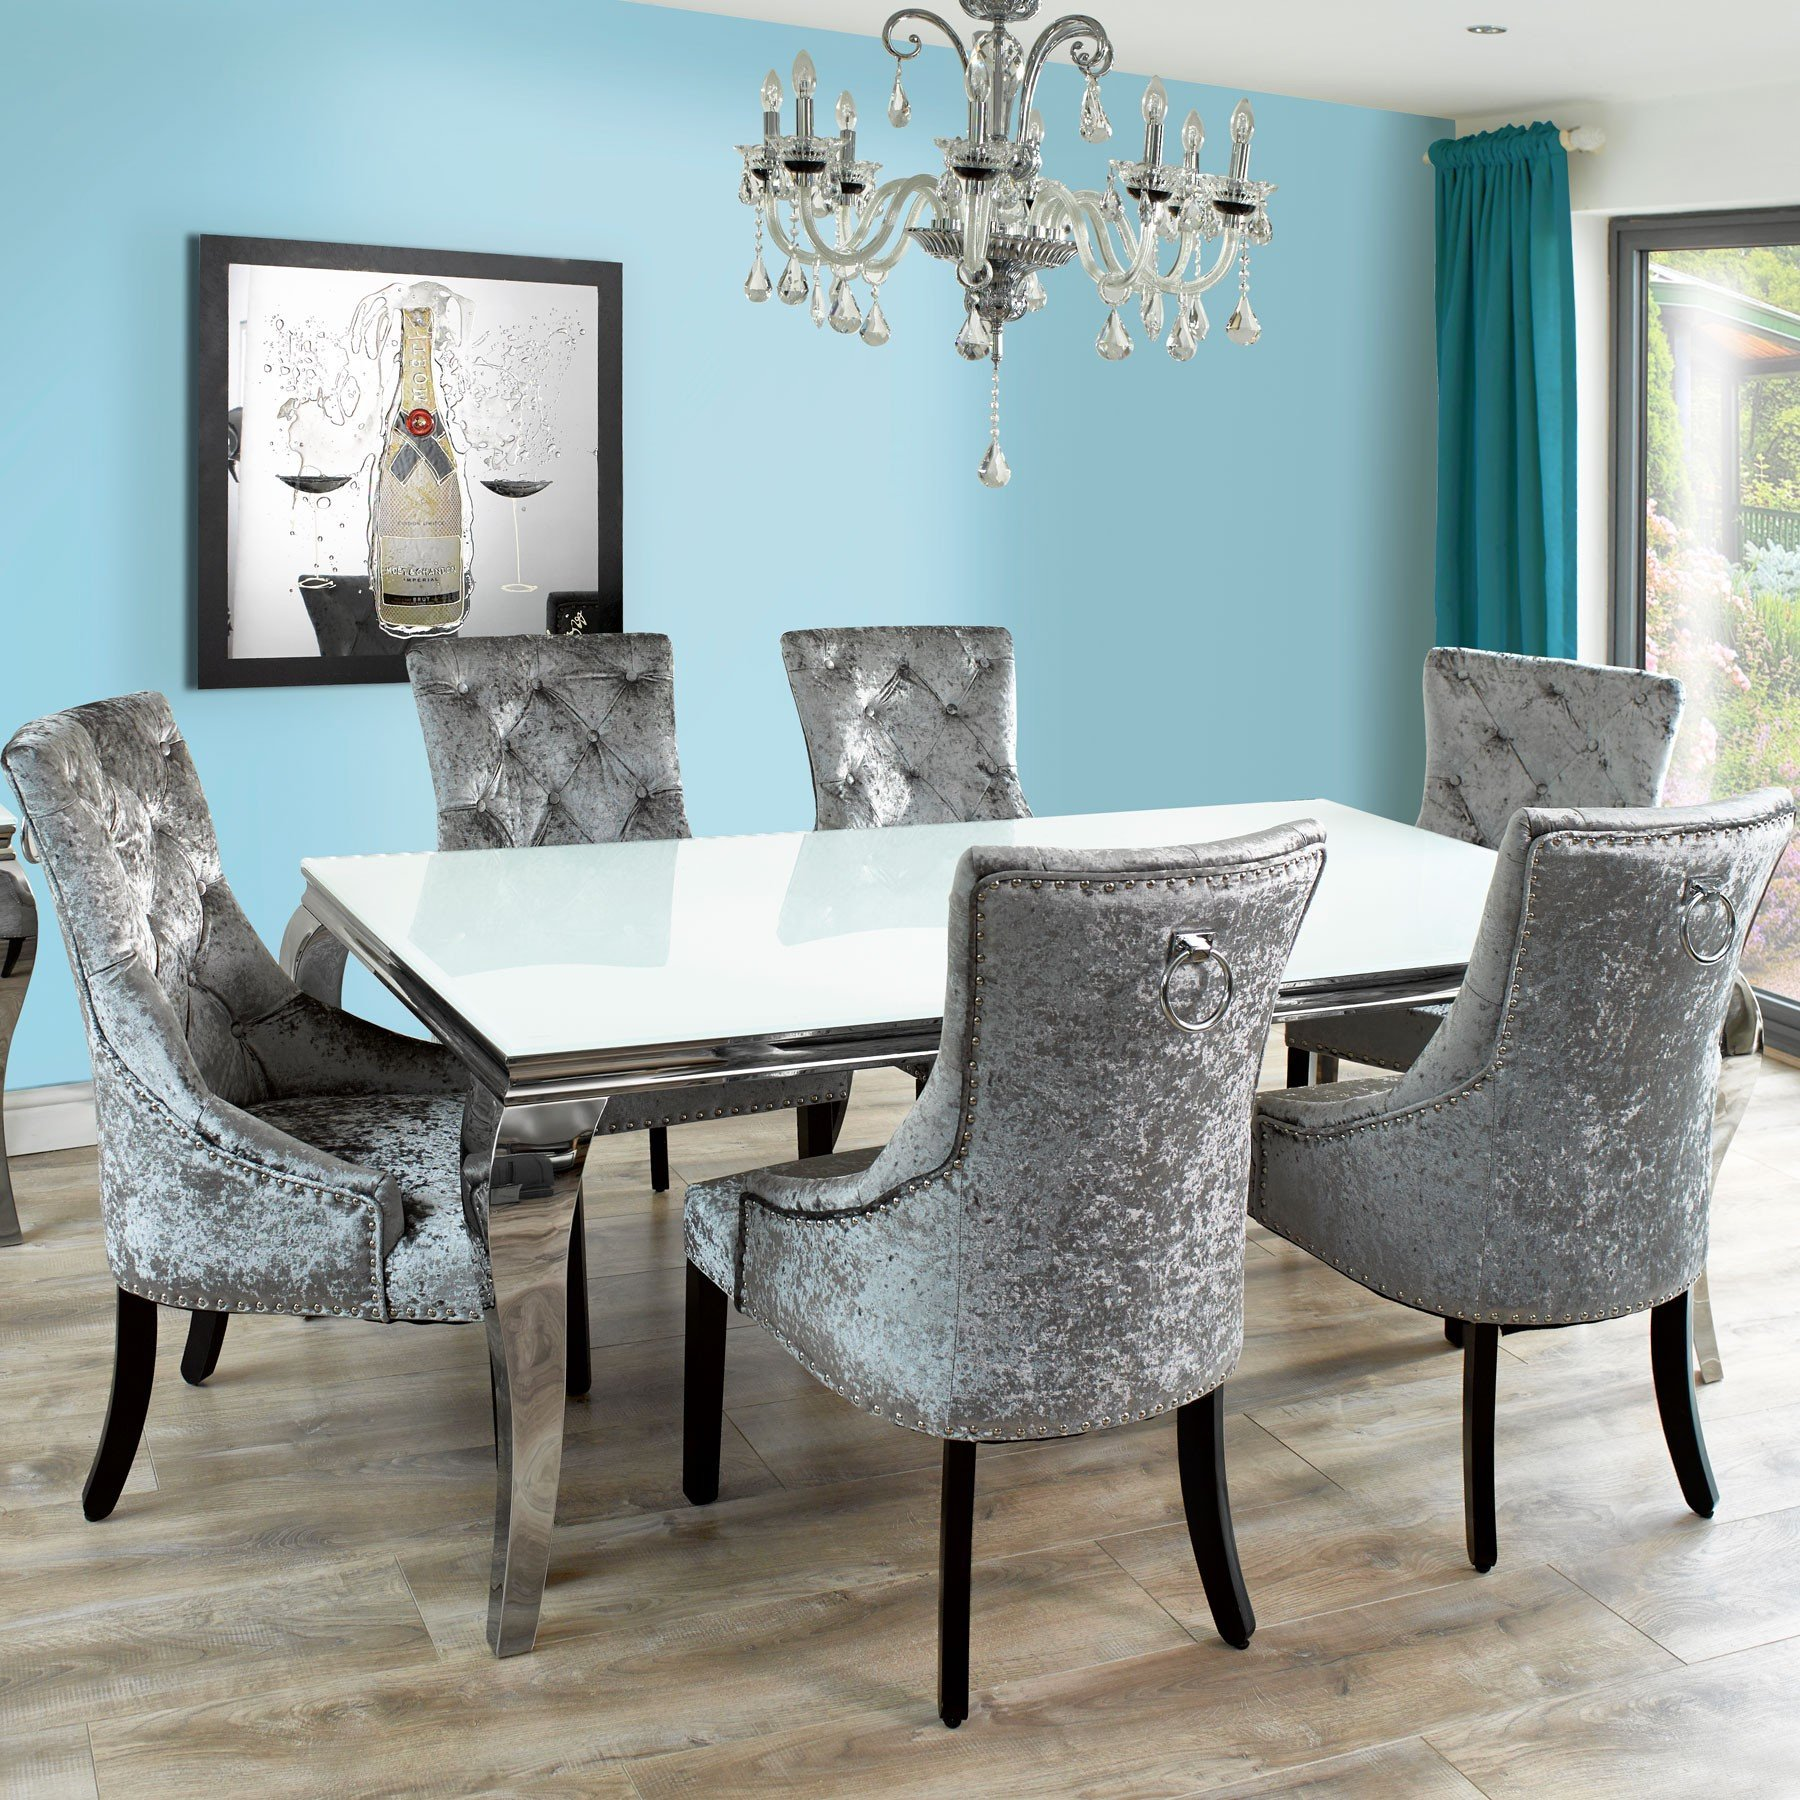 Dining Chairs How To Choose The Best Design For You Lakeland Furniture Blog